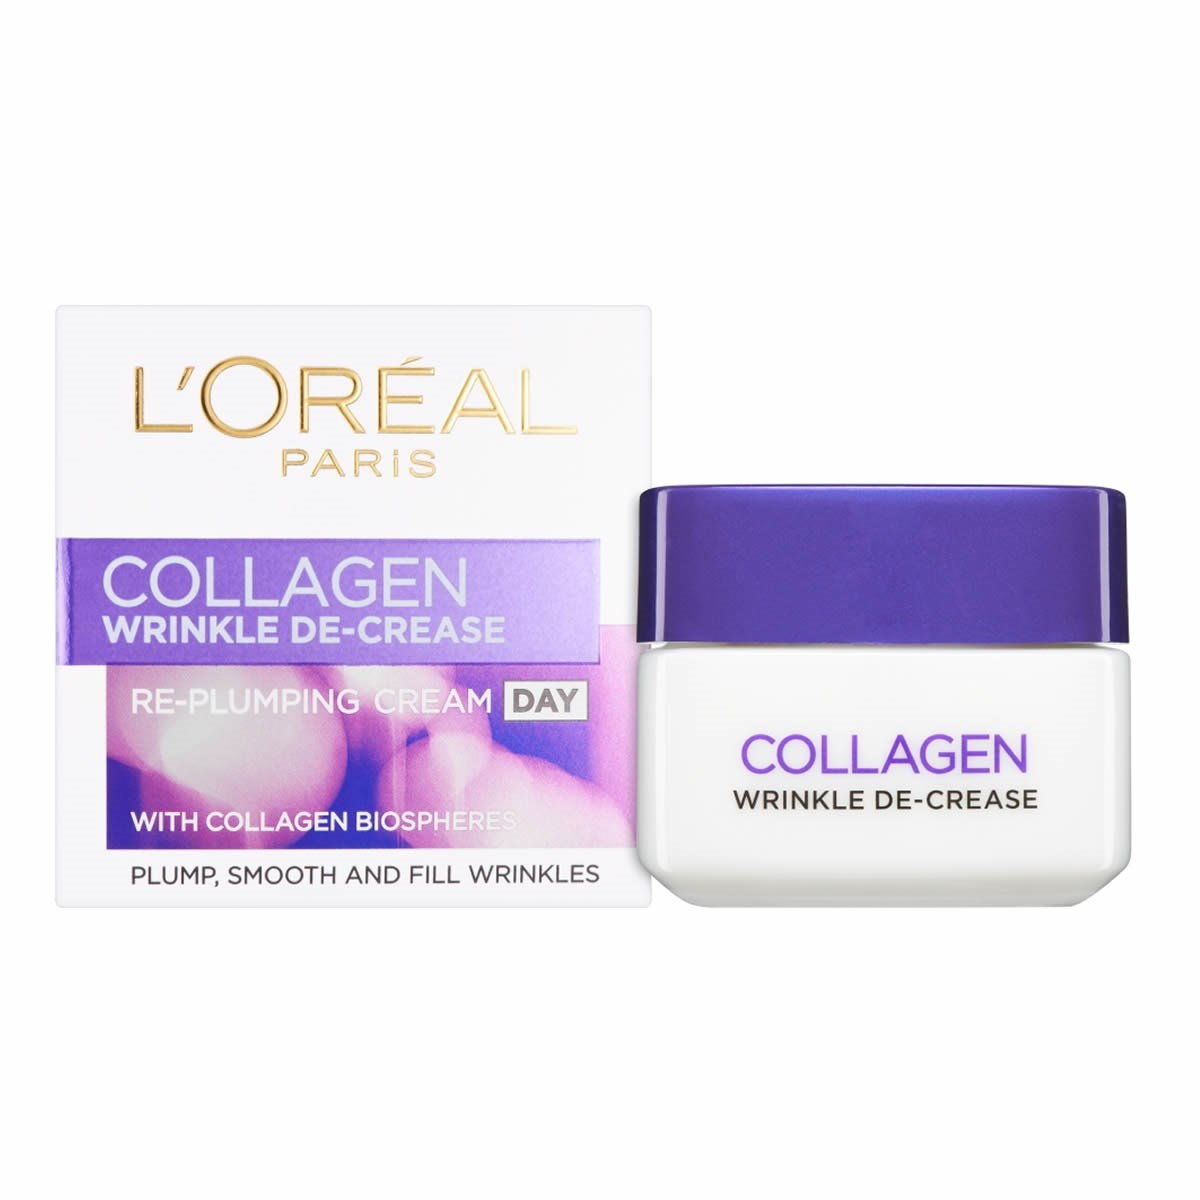 L'Oreal Paris Wrinkle De-Crease Collagen Re-Plumping Day Cream